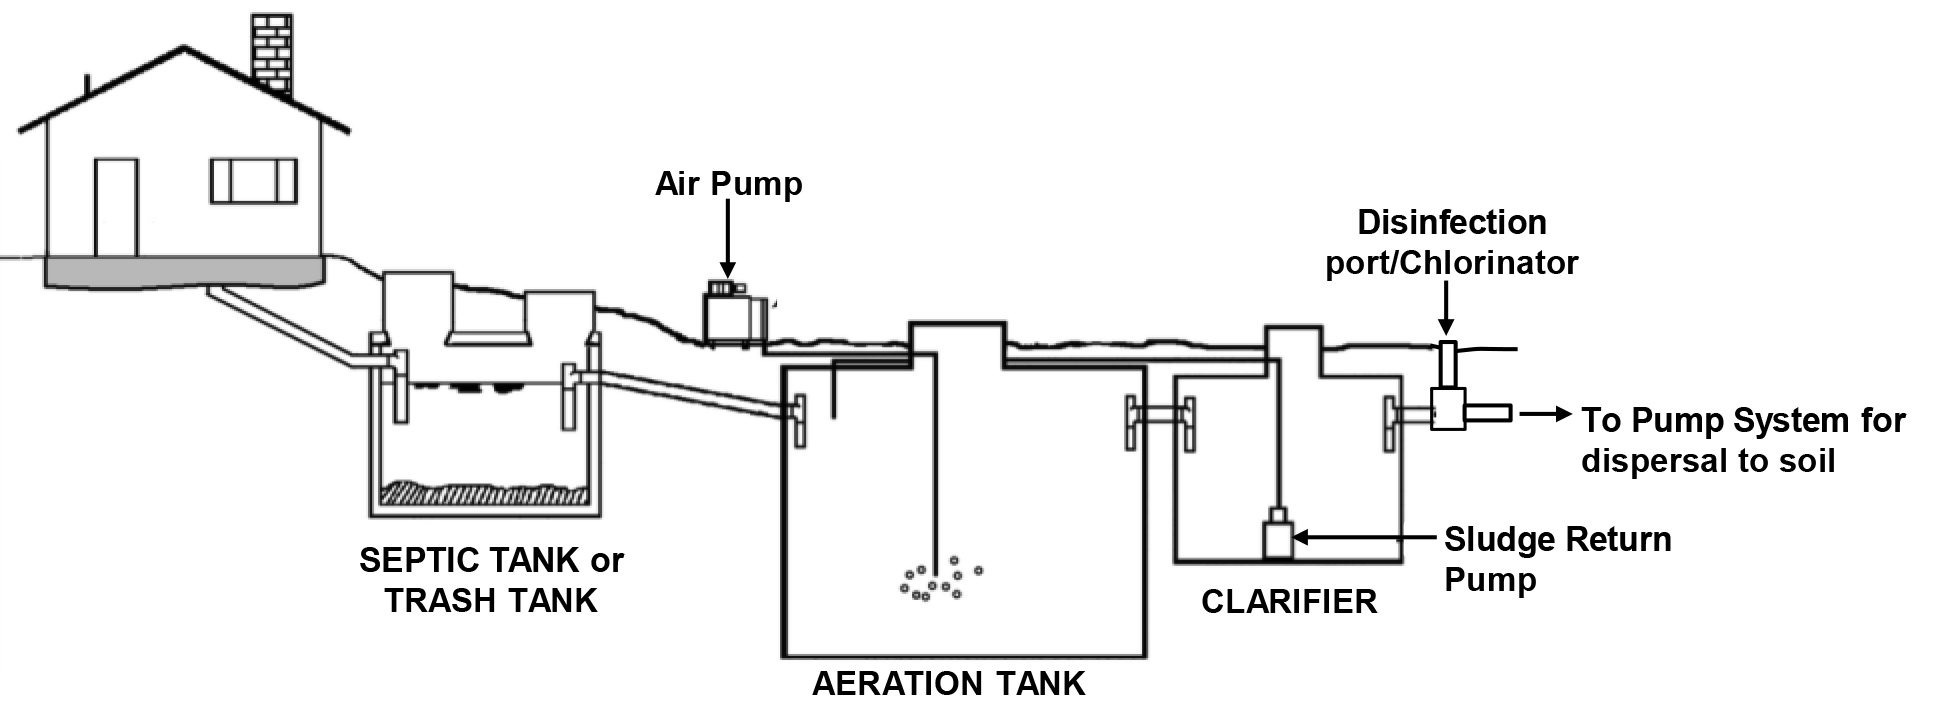 How Much To Have Septic Tank Pumped Diagram Hvac Wiring